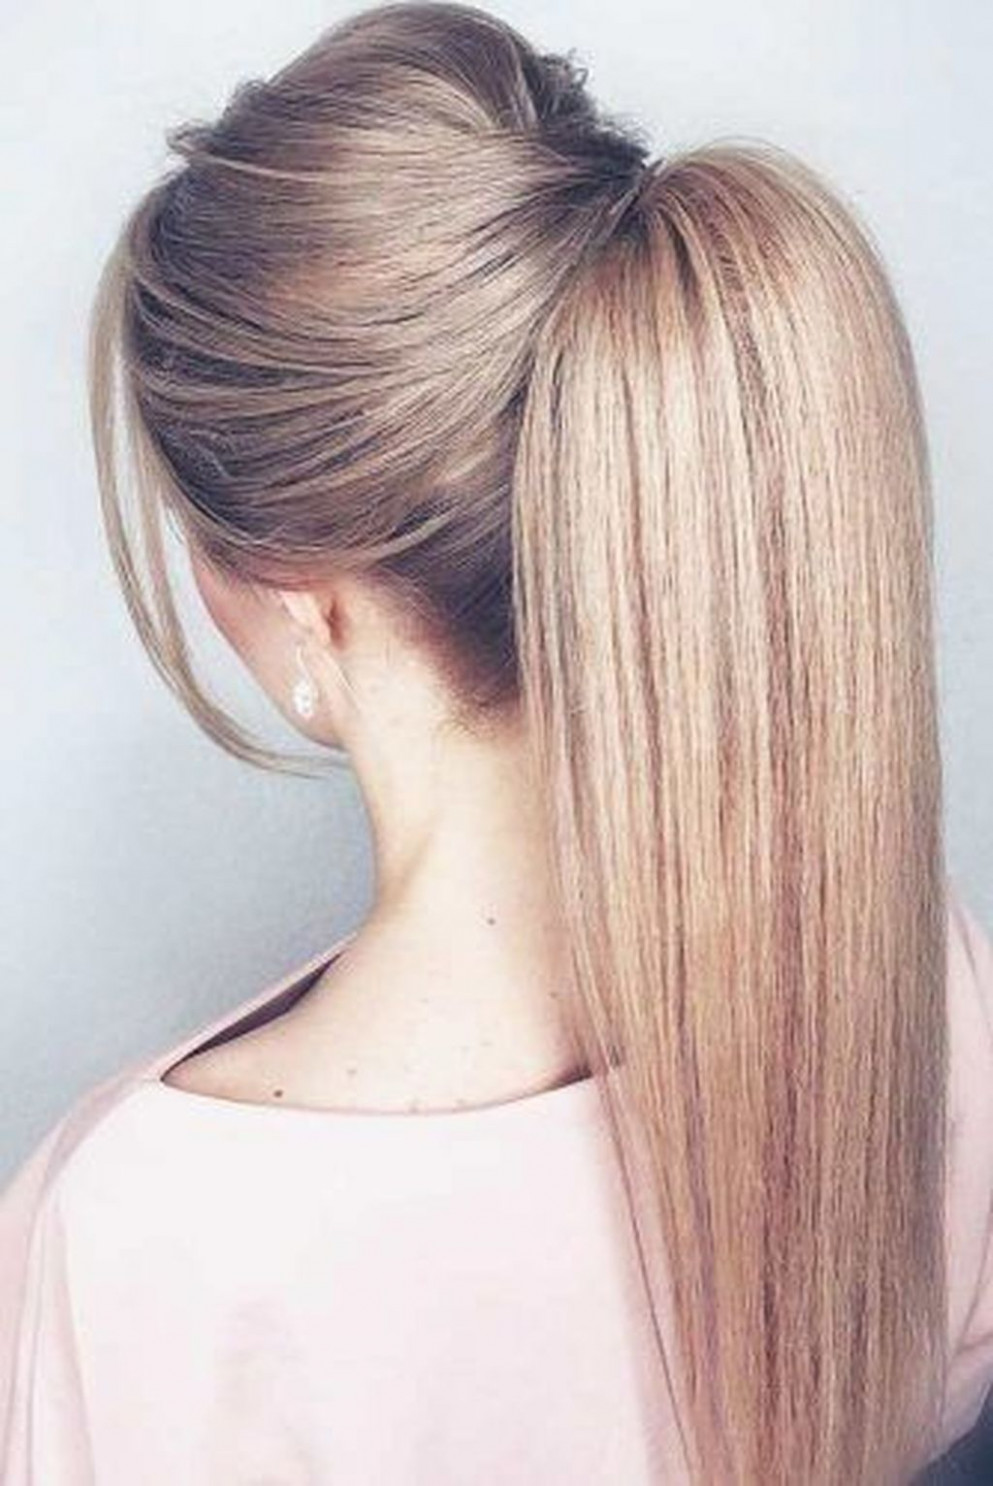 10 Nice & Easy Ponytail Hairstyle Ideas With Easy Tutorial  Cute  - Cute Ponytails